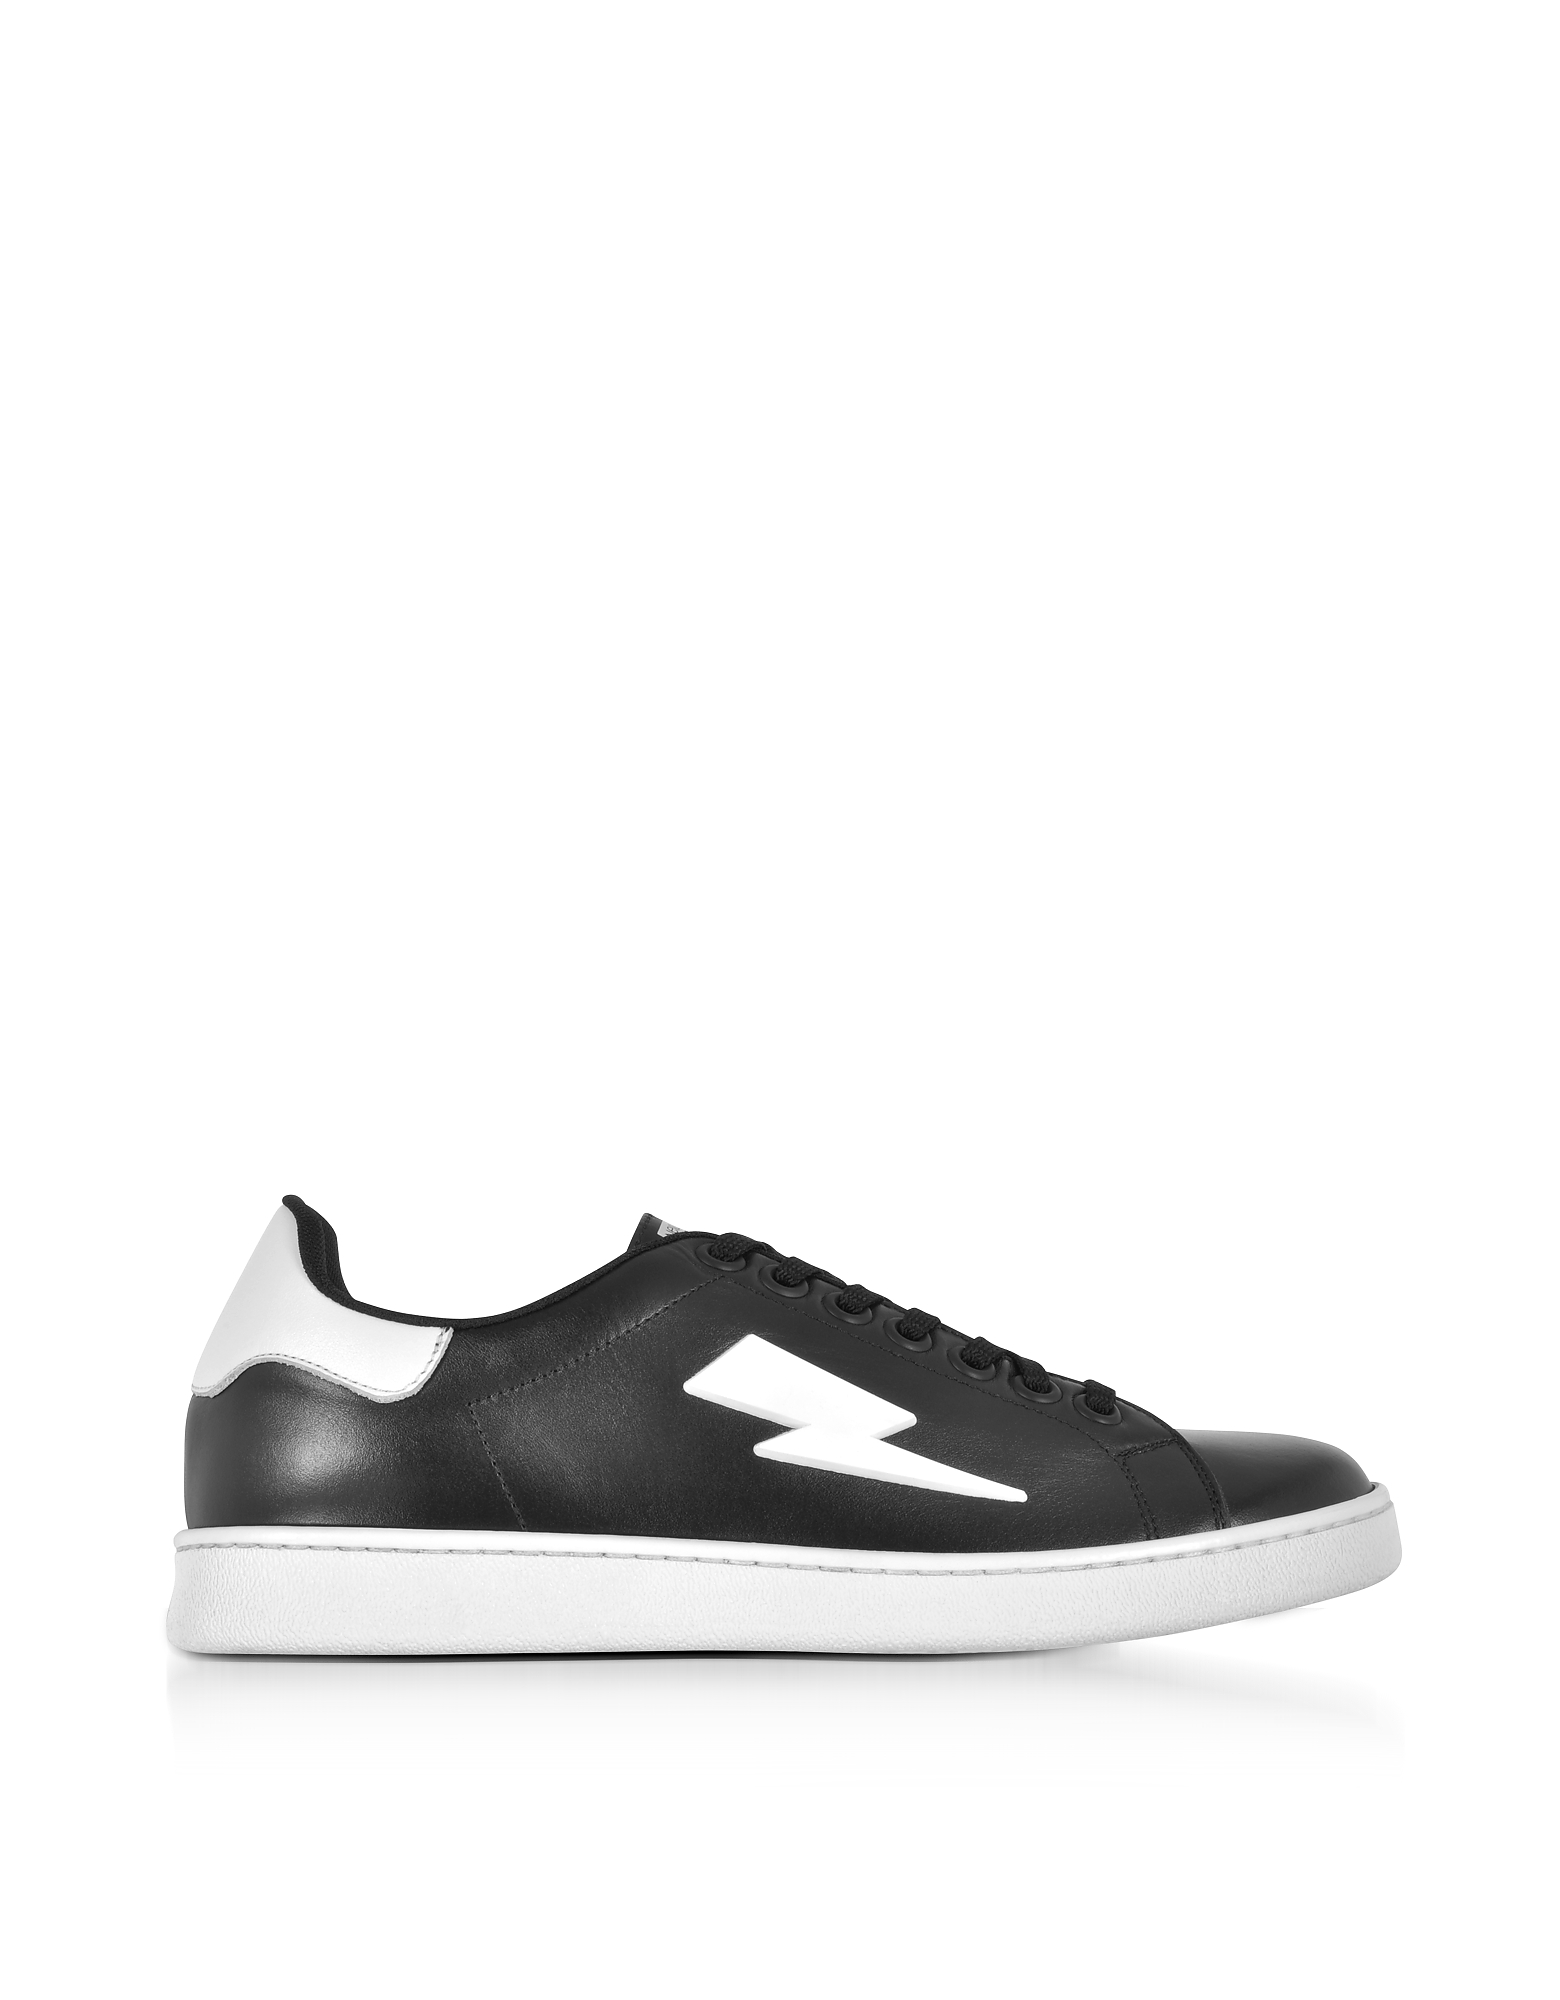 Black and White Leather Thunderbolt Tennis Sneakers